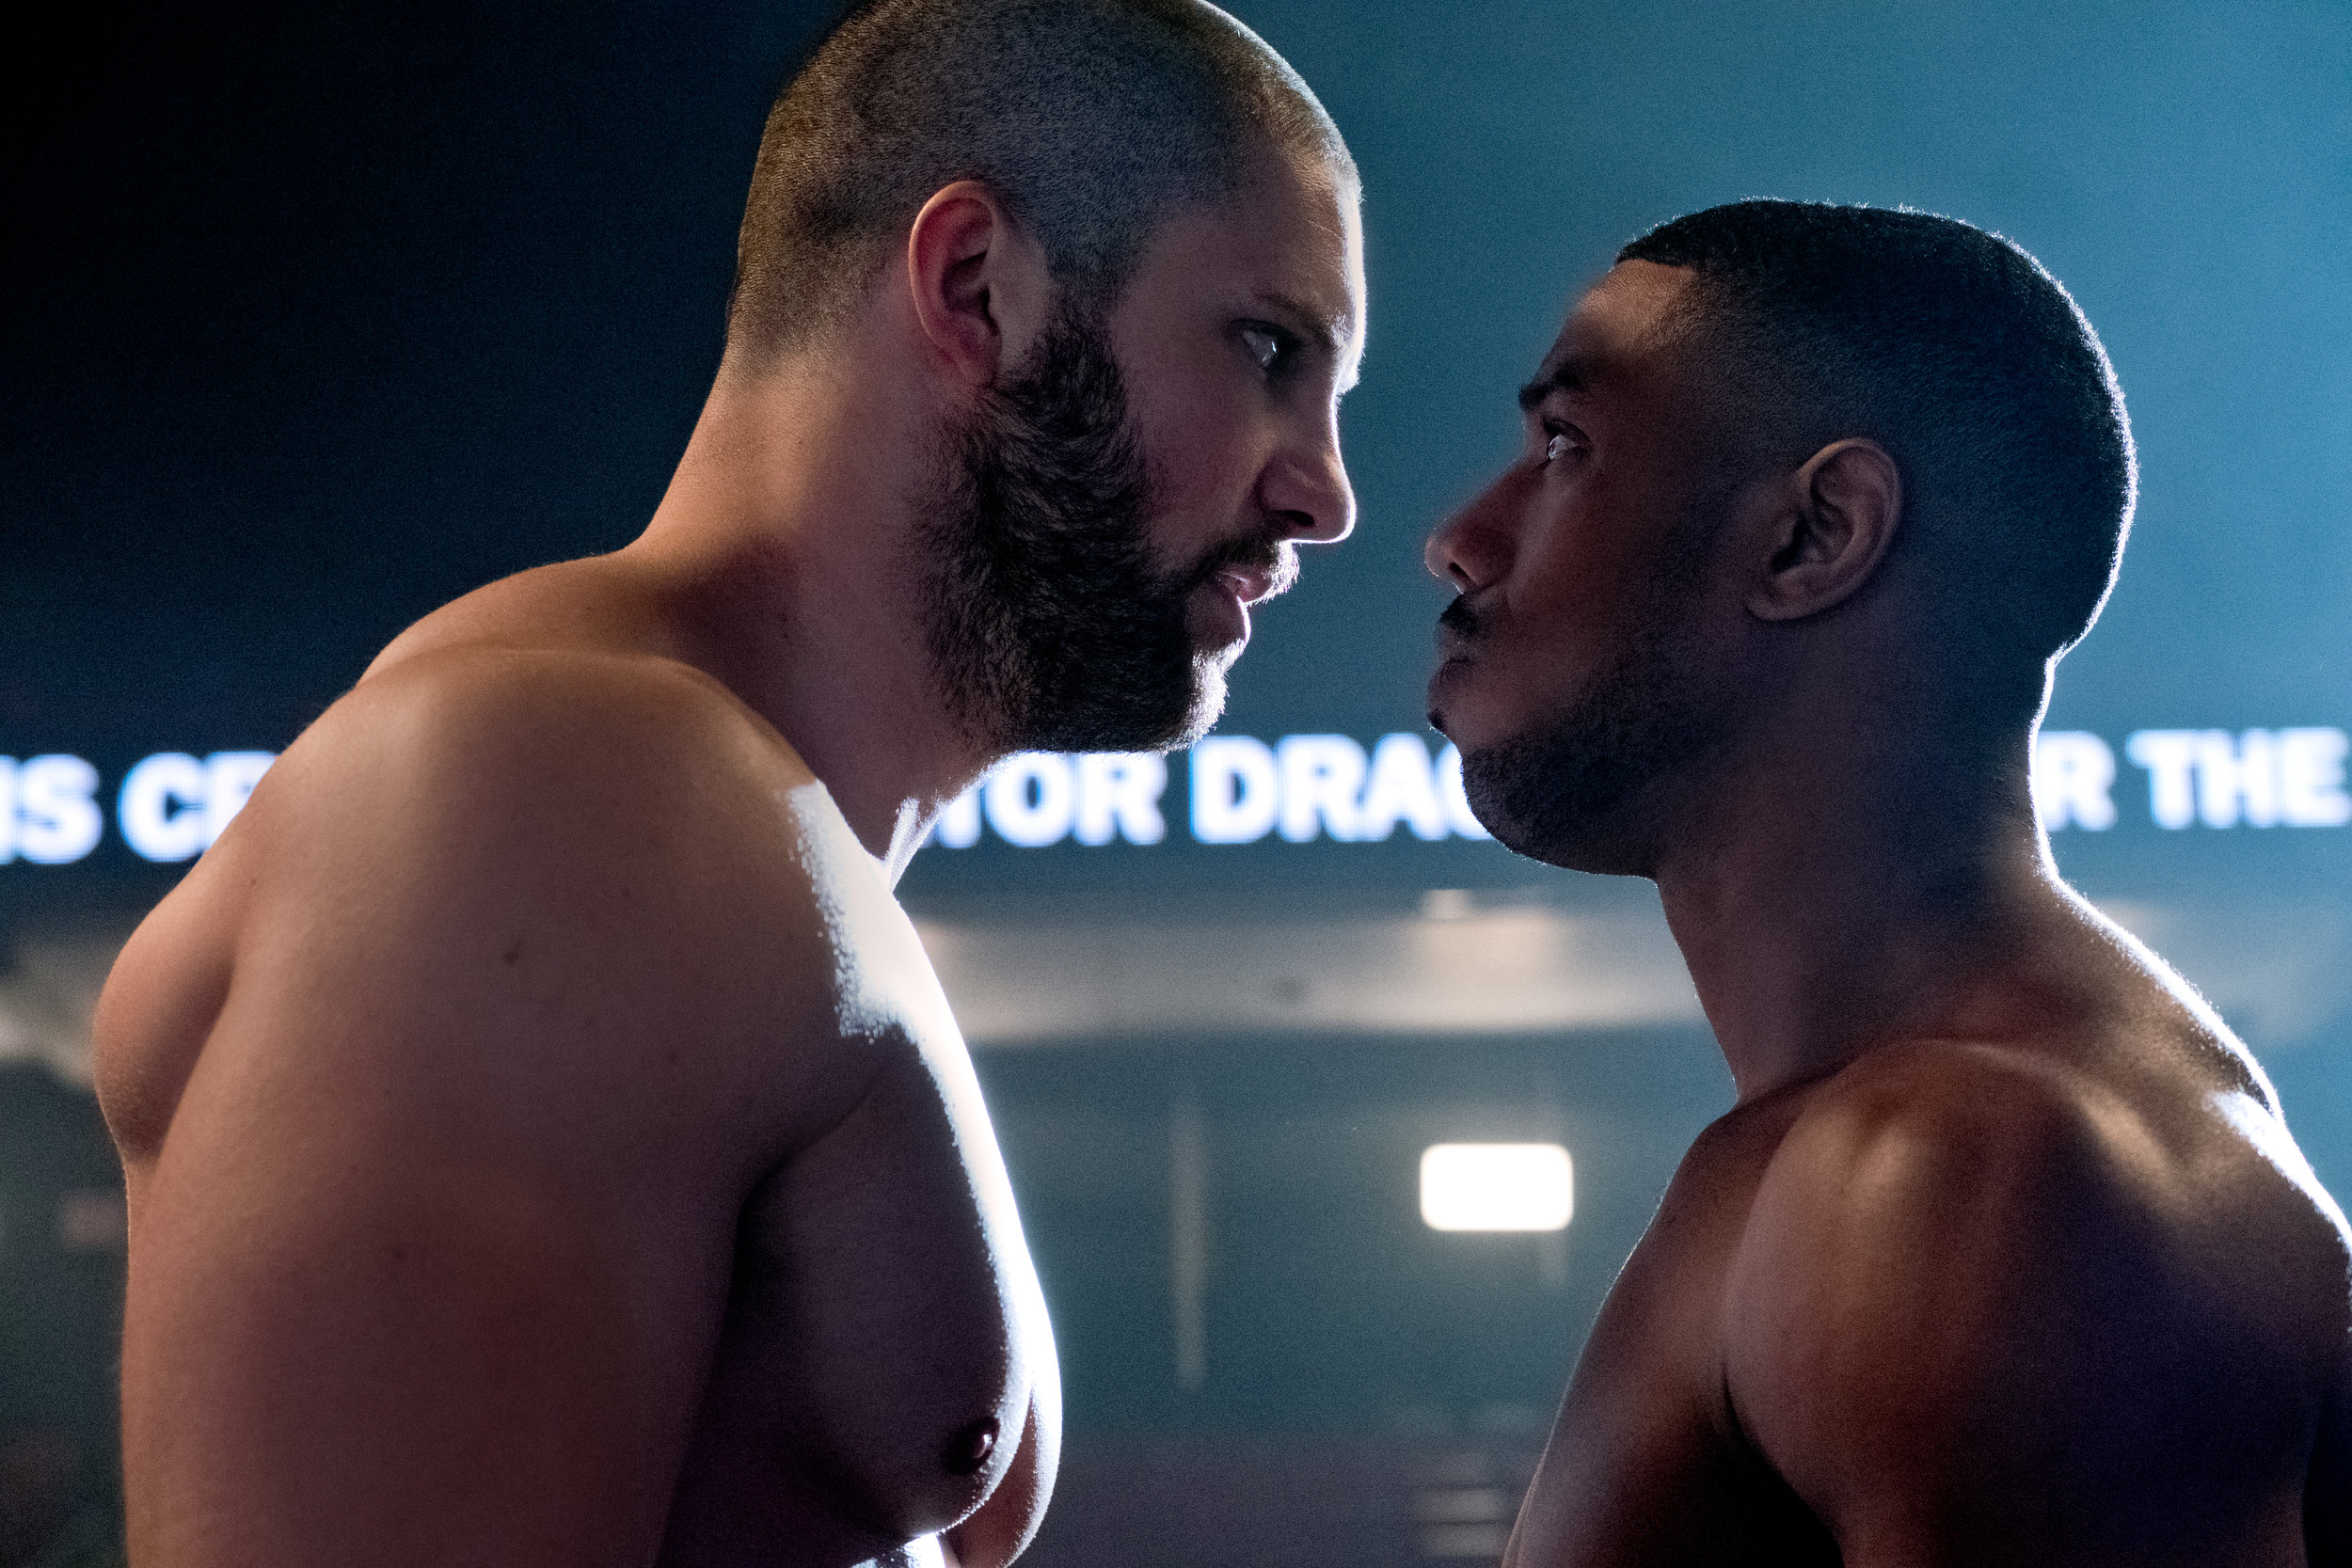 "Adonis Creed Johnson (Michael B. Jordan, right) stares down Viktor Drago (Florian ""Big Nasty"" Munteanu), the son of the boxer who killed Adonis' father in the ring, in a scene from ""Creed II."" (Photo by Barry Wetcher, courtesy of Metro Goldwyn Mayer Pictures / Warner Bros. Pictures)"